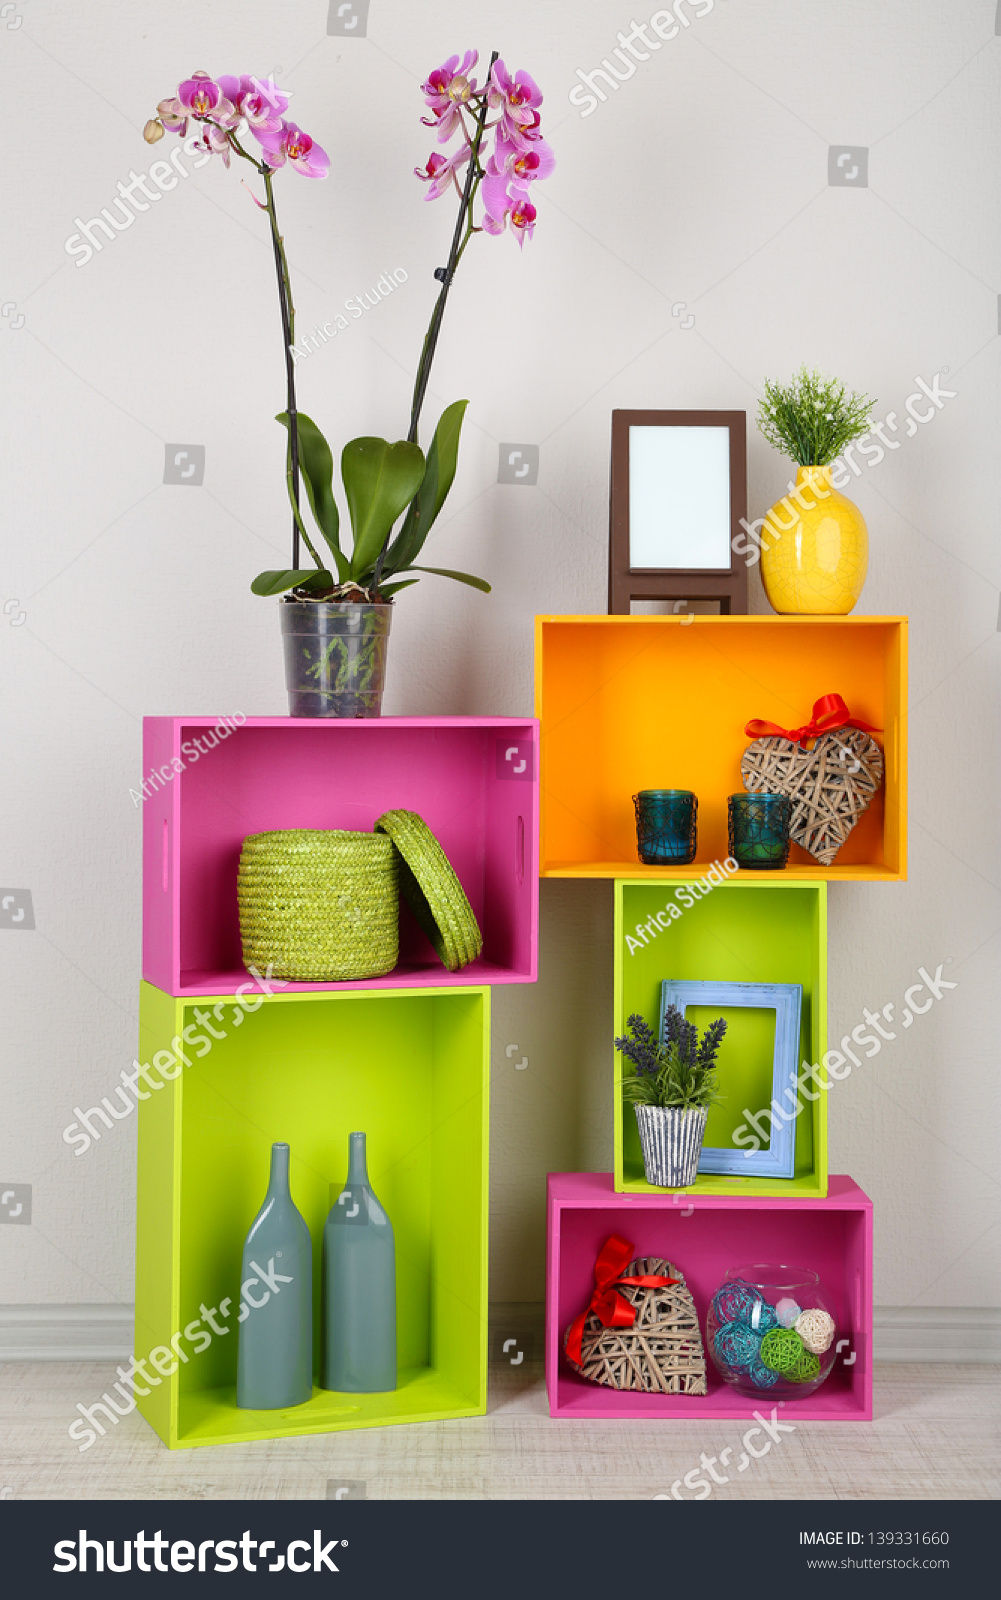 Beautiful colorful shelves with different home related objects stock photo 139331660 shutterstock - Beautiful photoshelves ...